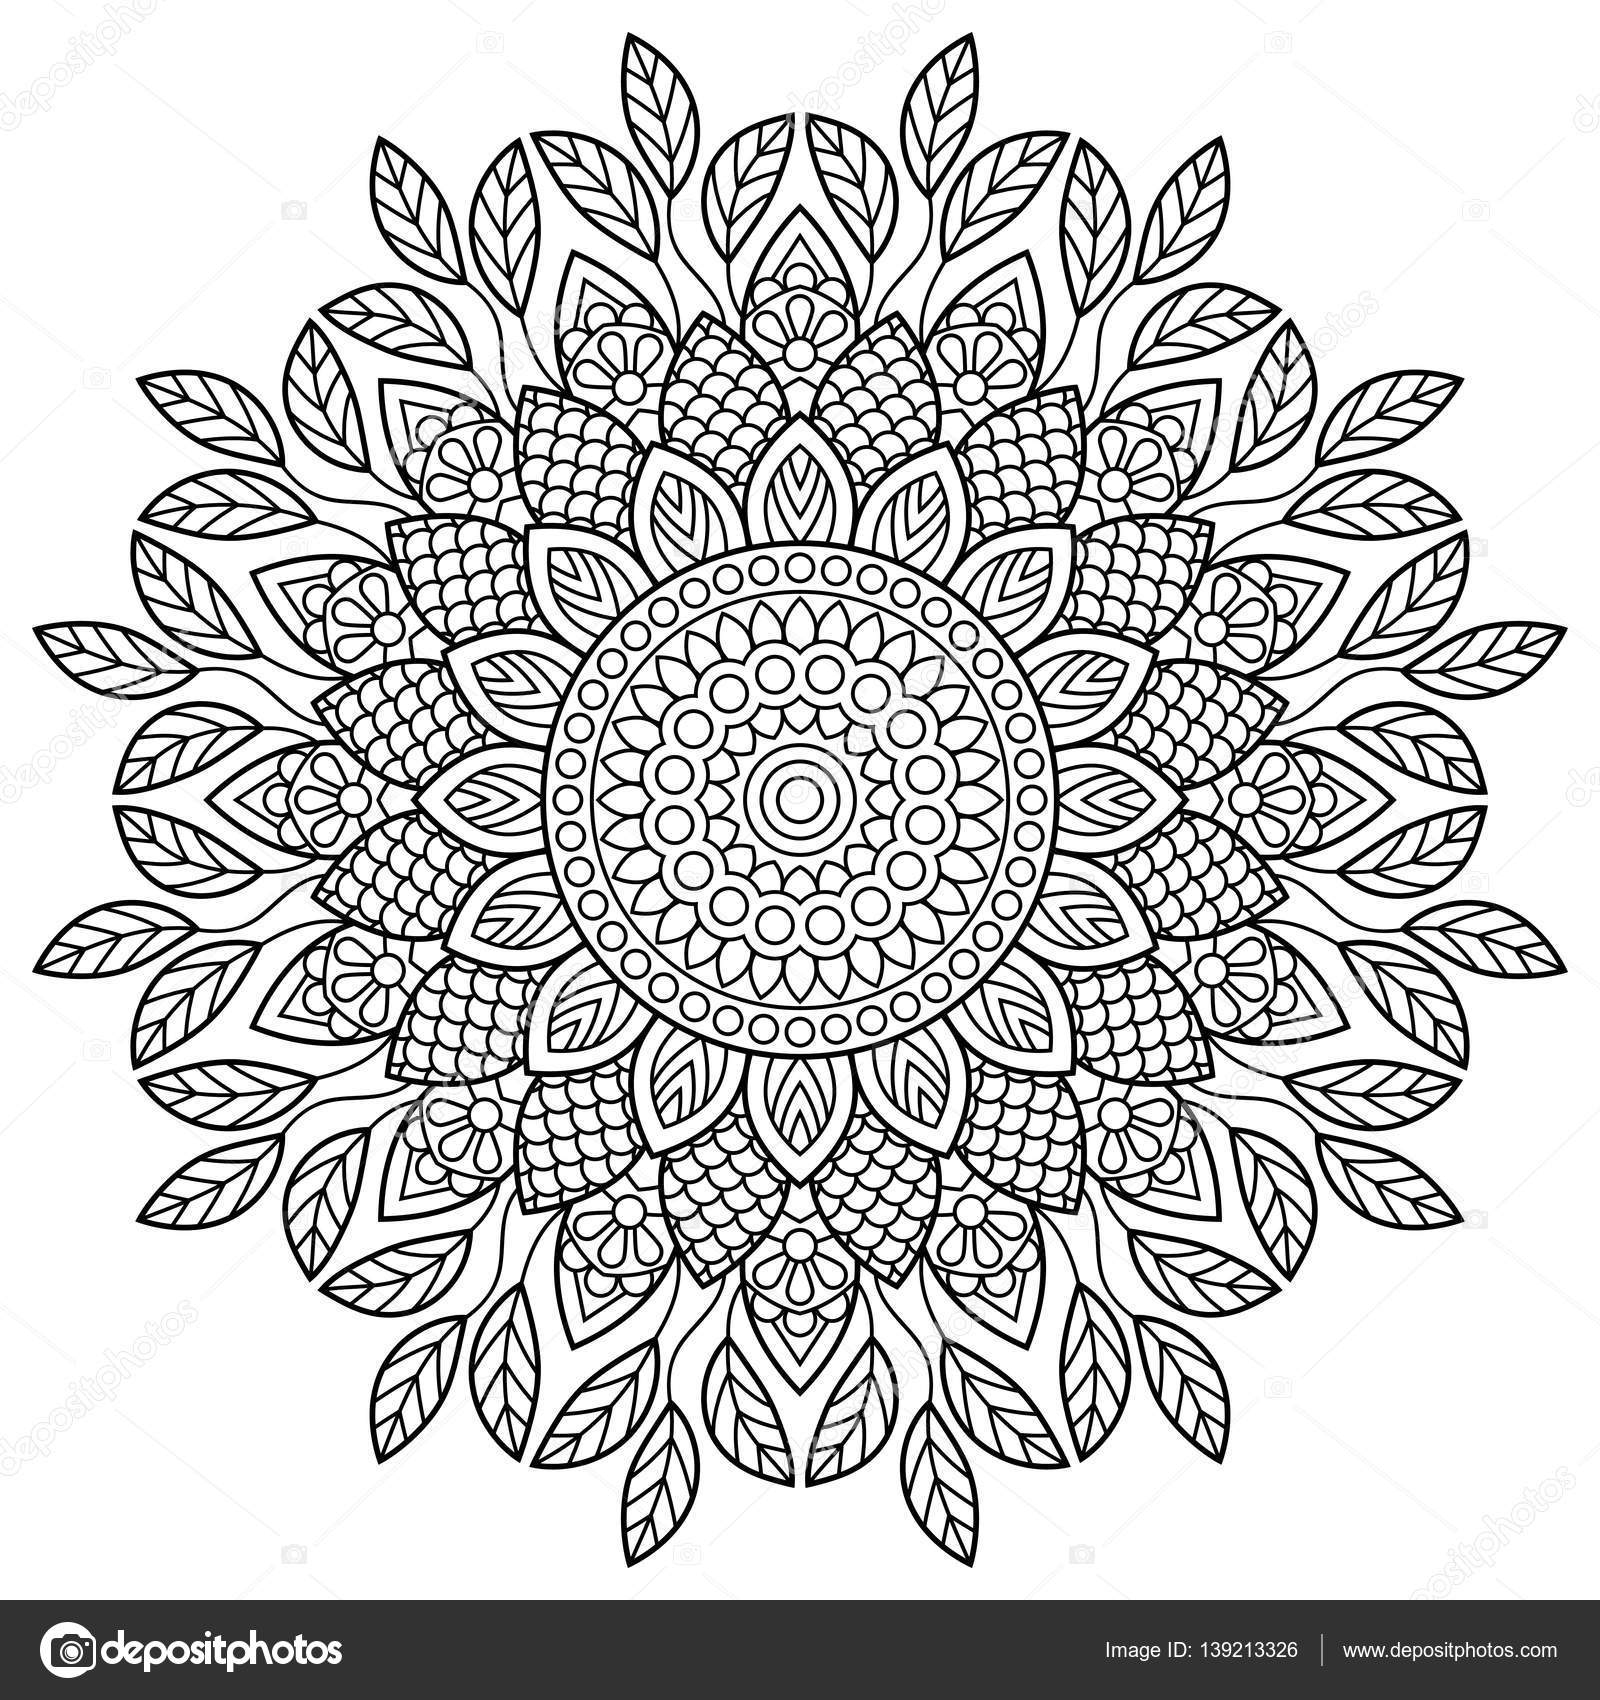 Mandala. Coloring book pages — Stock Vector © jelisua88 #139213326